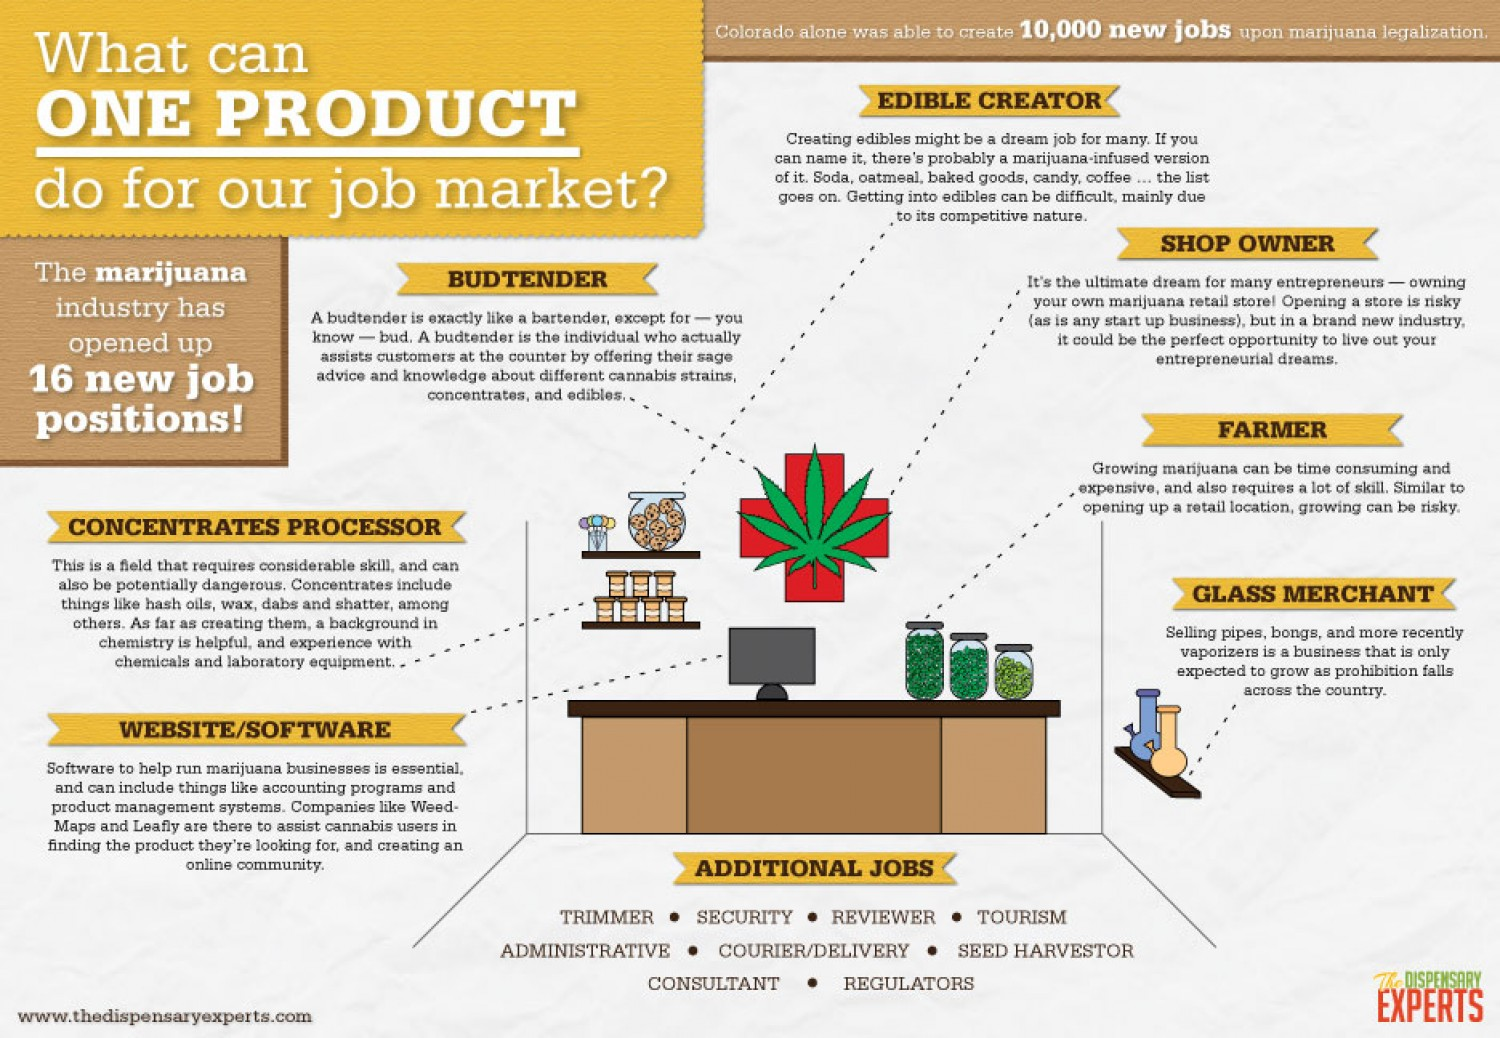 What Can One Product Do For Our Job Market?